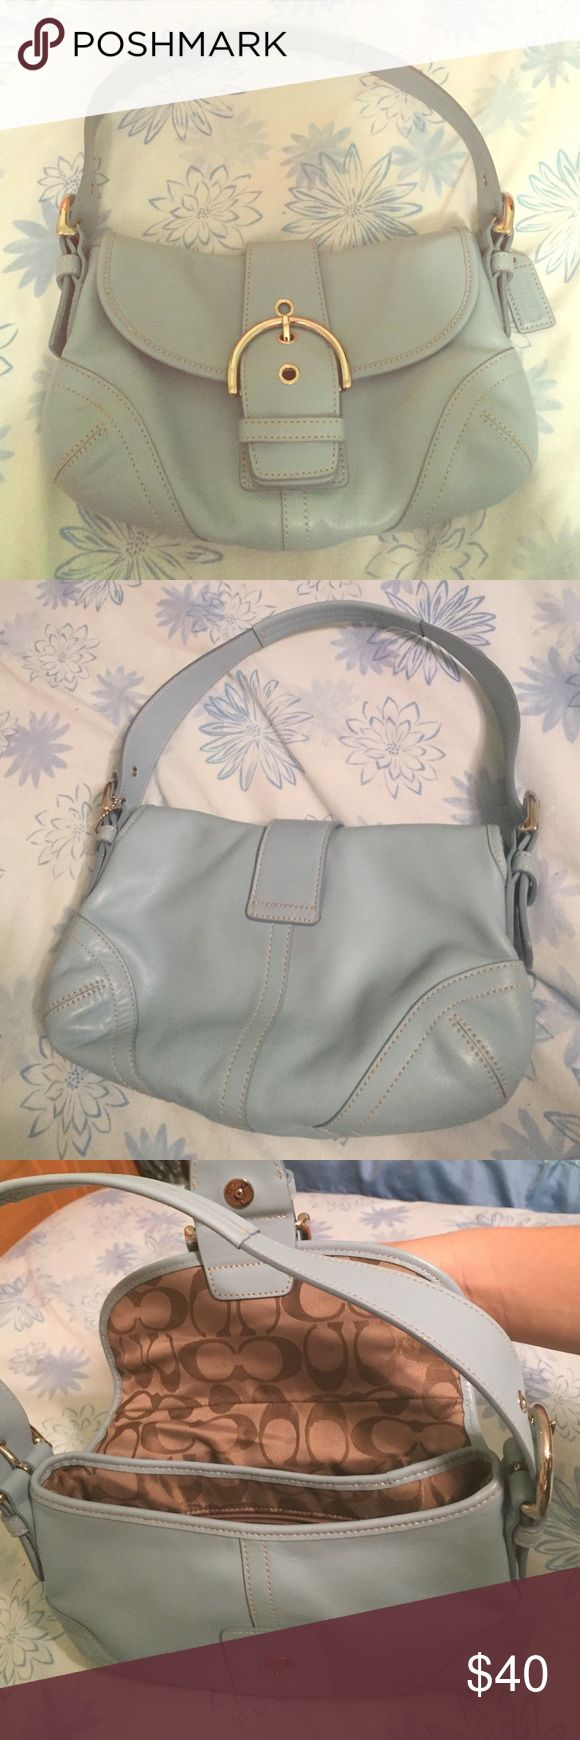 Baby blue leather coach shoulder bag Never used, all leather, authentic Coach Bags Shoulder Bags